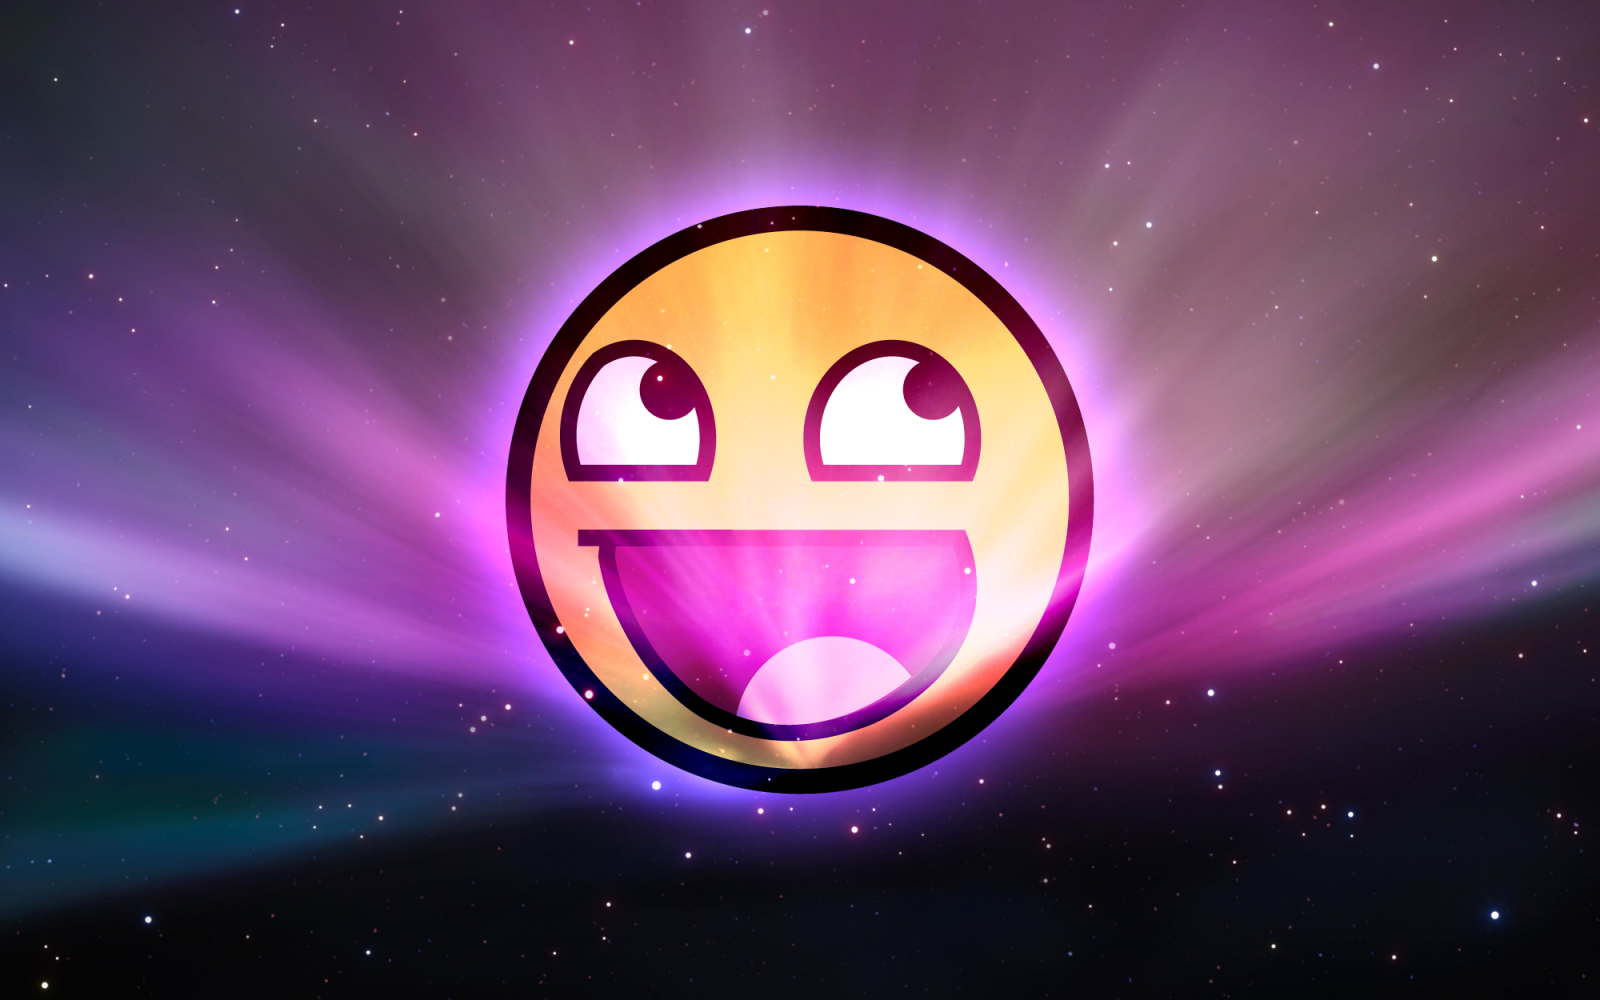 Awesome Smiley Face Wallpapers 1600x1000